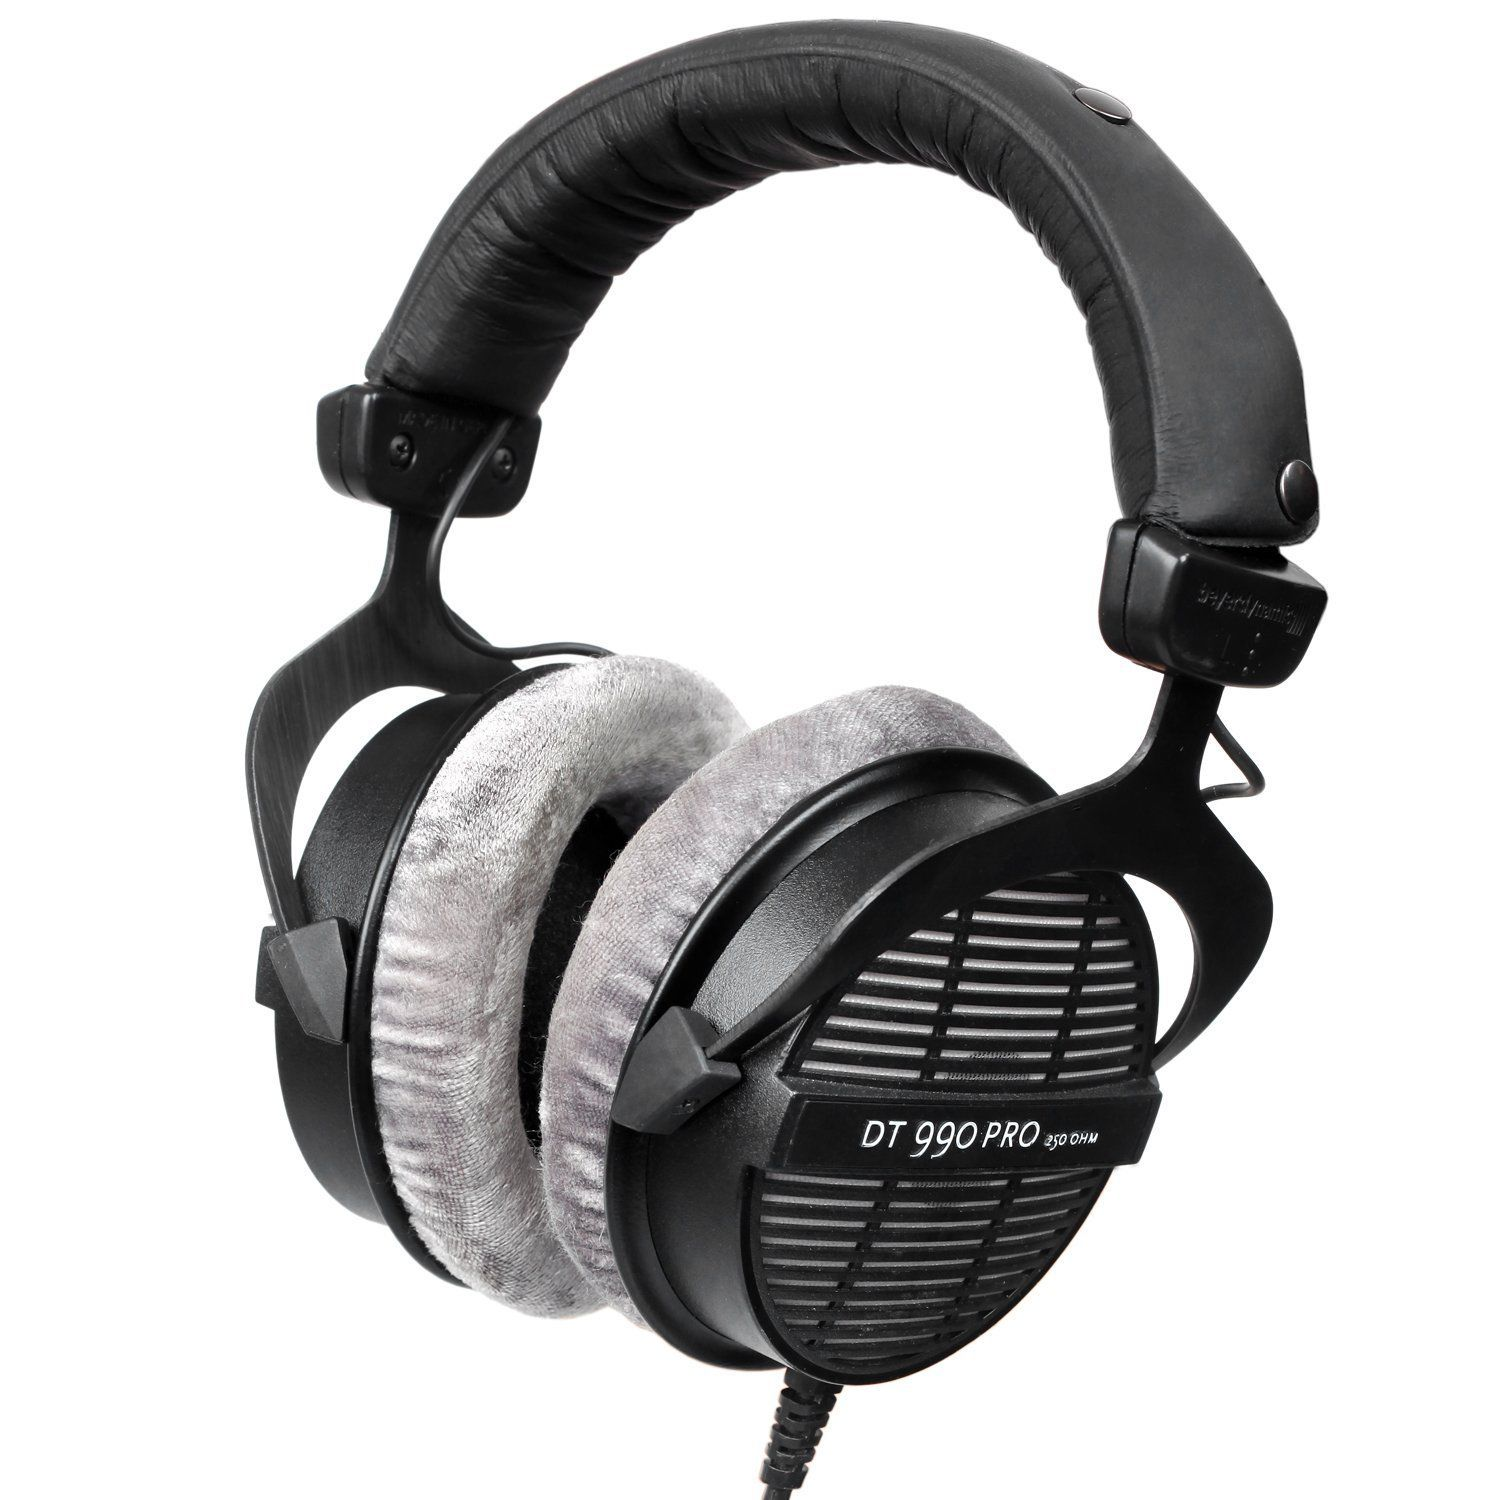 Beyerdynamic DT 990 Pro 250 Ohm Hallo-fi kopfhörer, <font><b>Professional</b></font> <font><b>Studio</b></font> Headsets, Open Back Stirnband headpones Made in Deutschland image